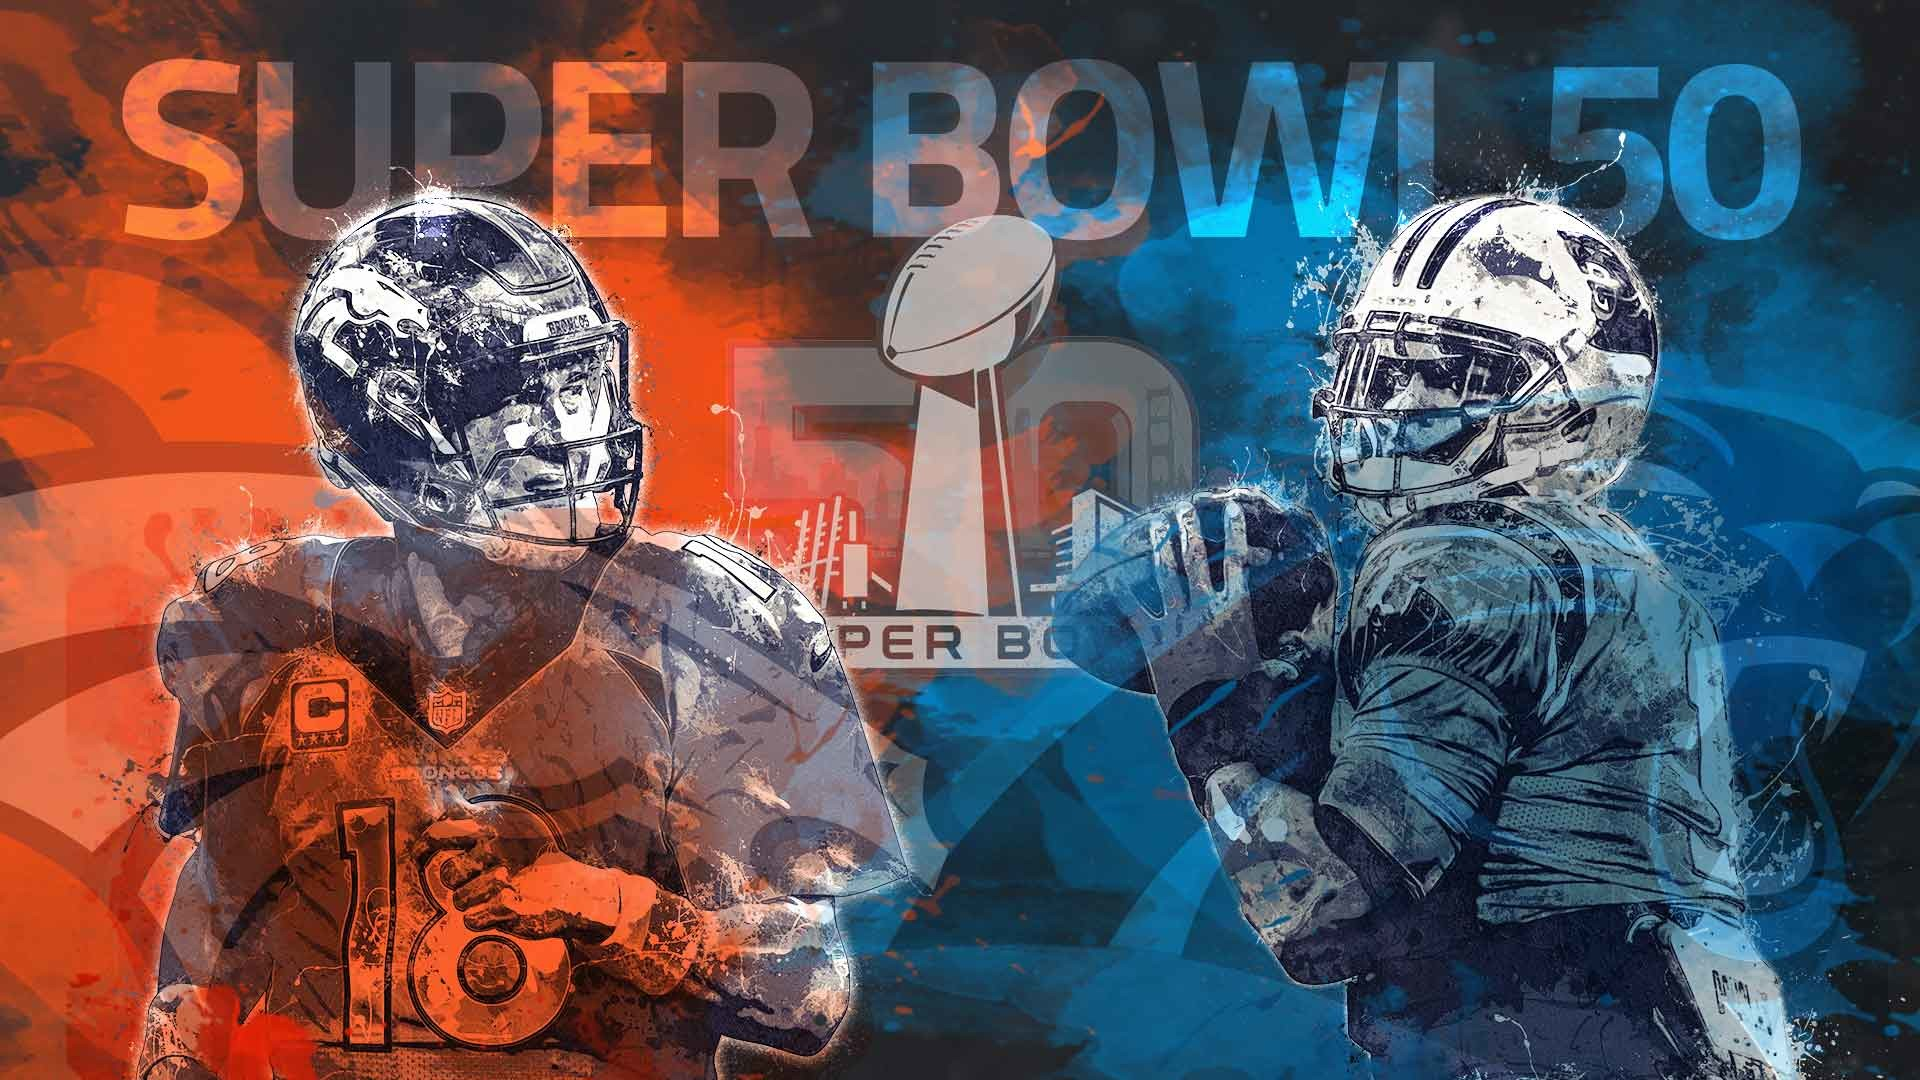 1920x1080 Super Bowl 50 live blog: Updates, analysis and jokes about Broncos-Panthers  | NFL | Sporting News